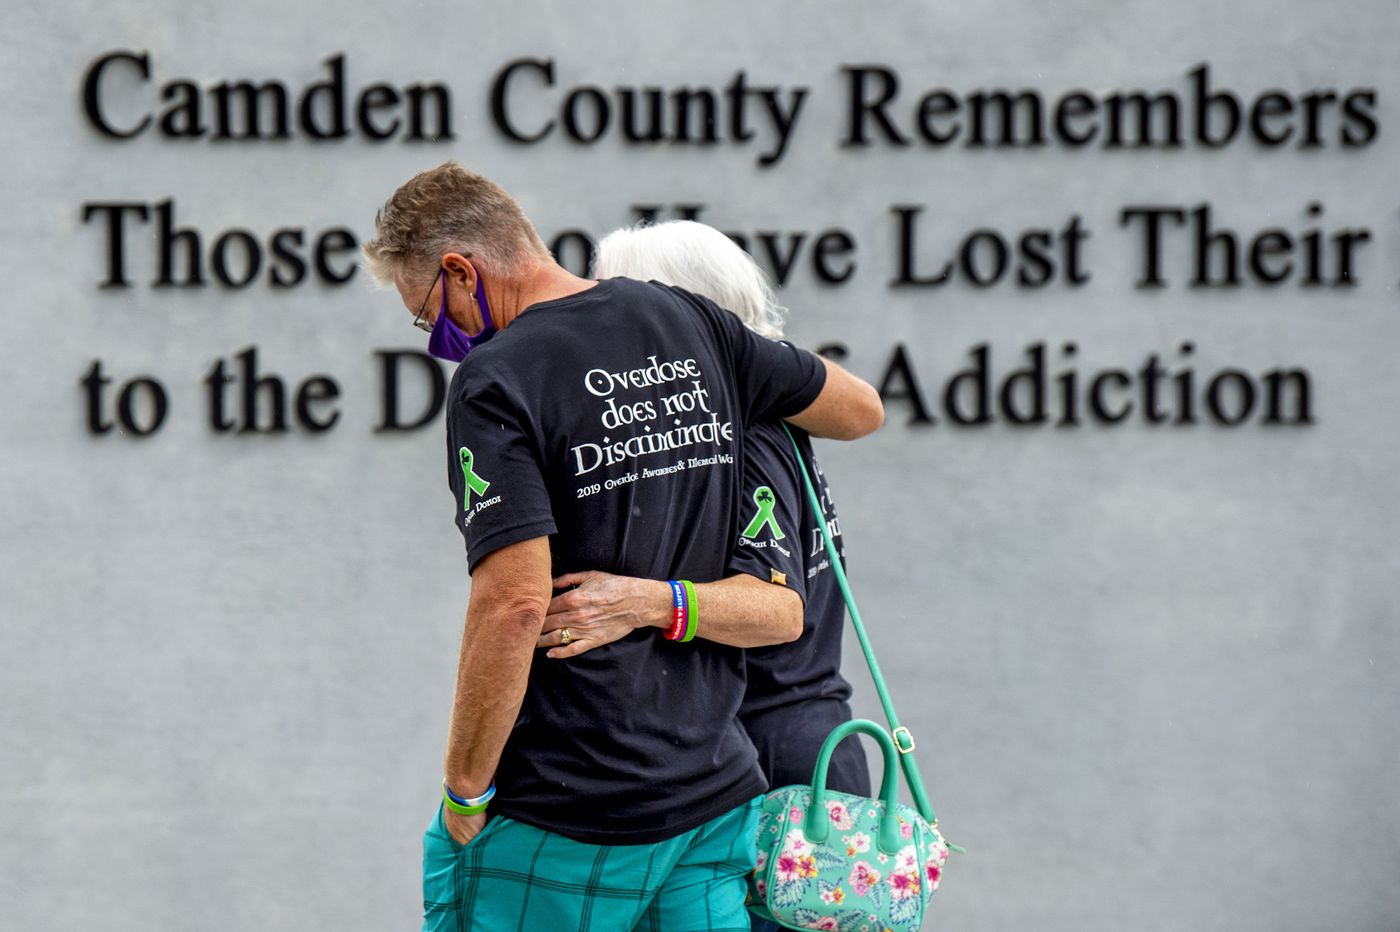 A place to remember those lost to opioids